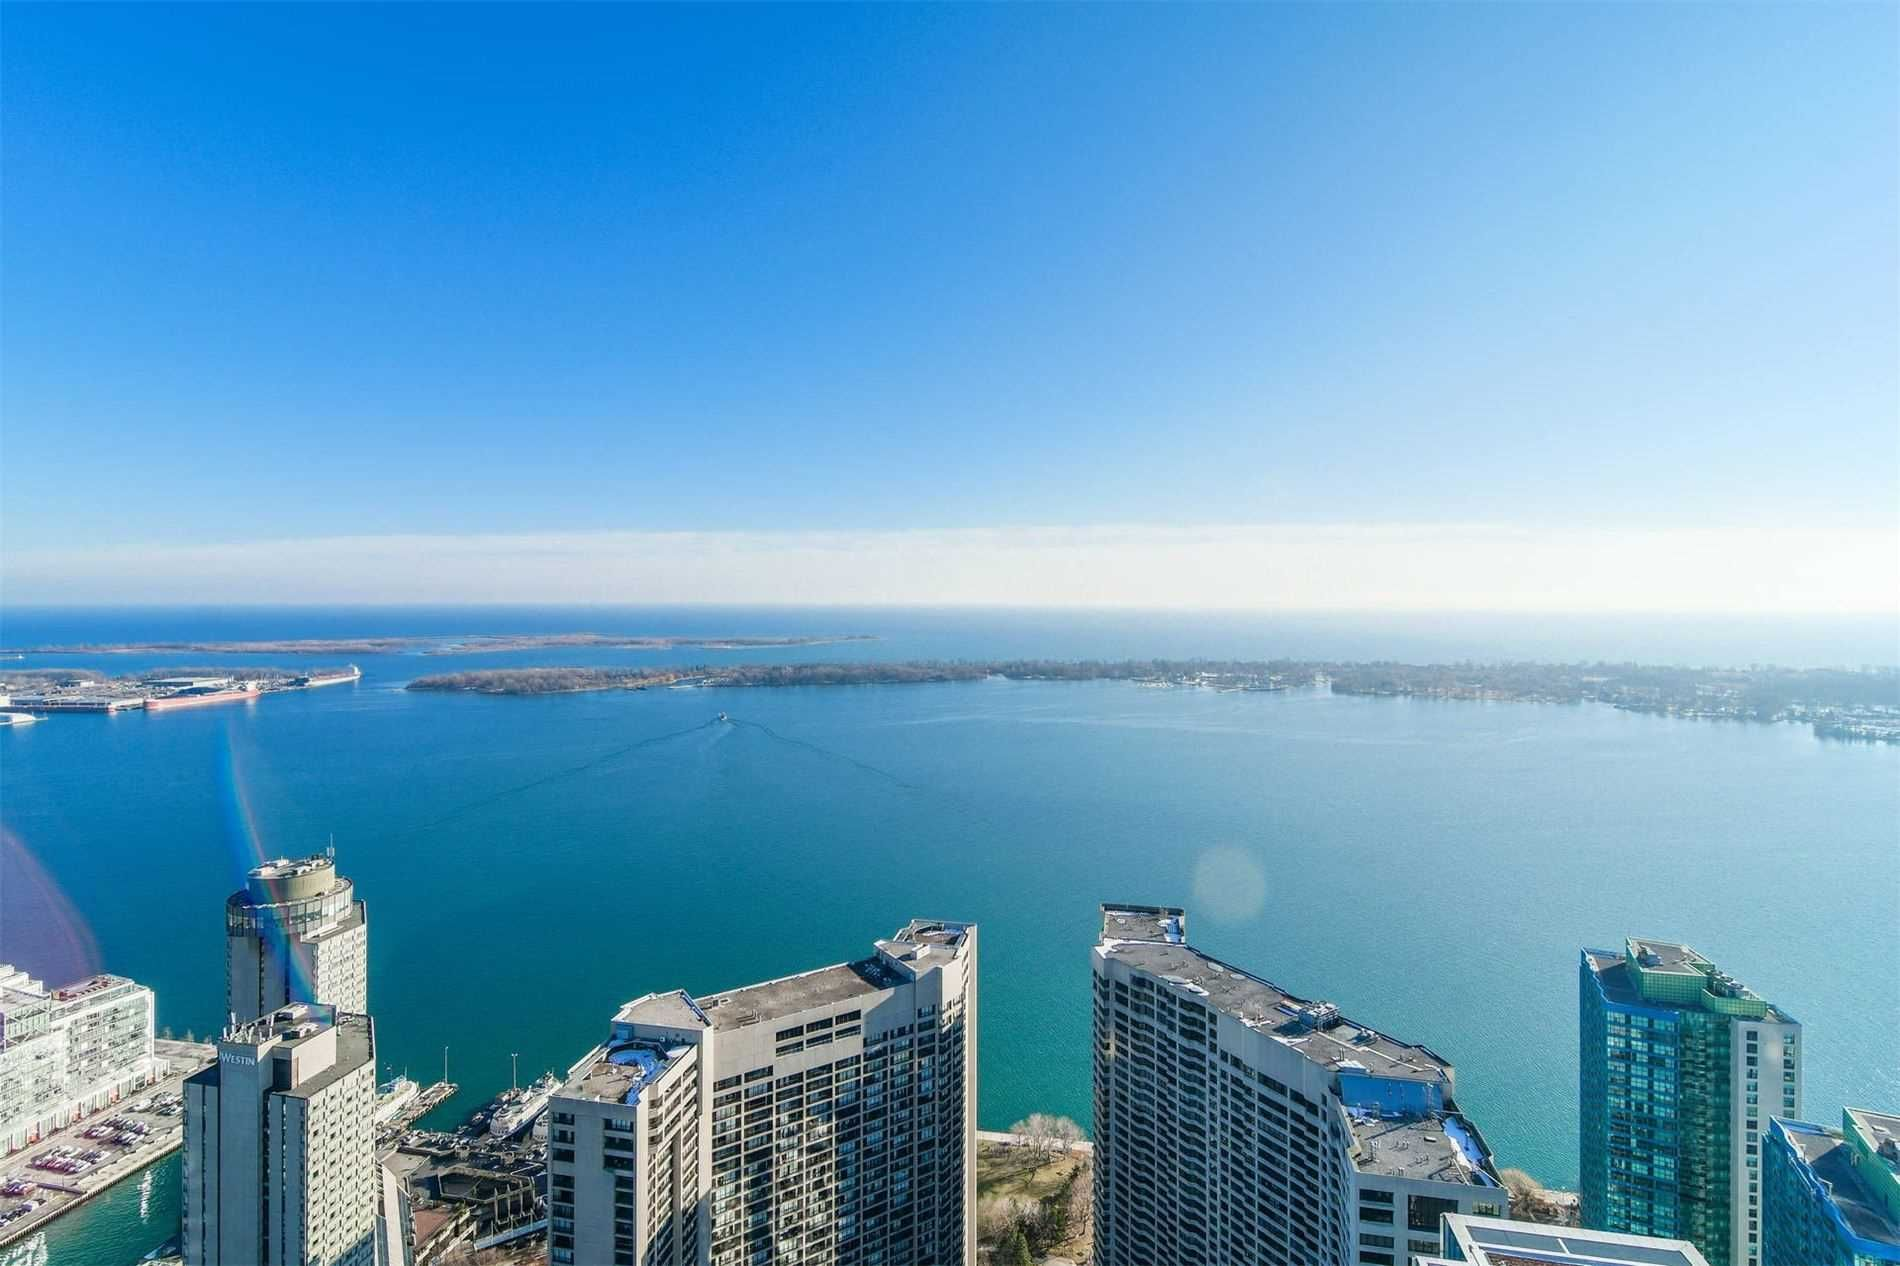 88 Harbour St, unit 6610 for rent in Toronto - image #1